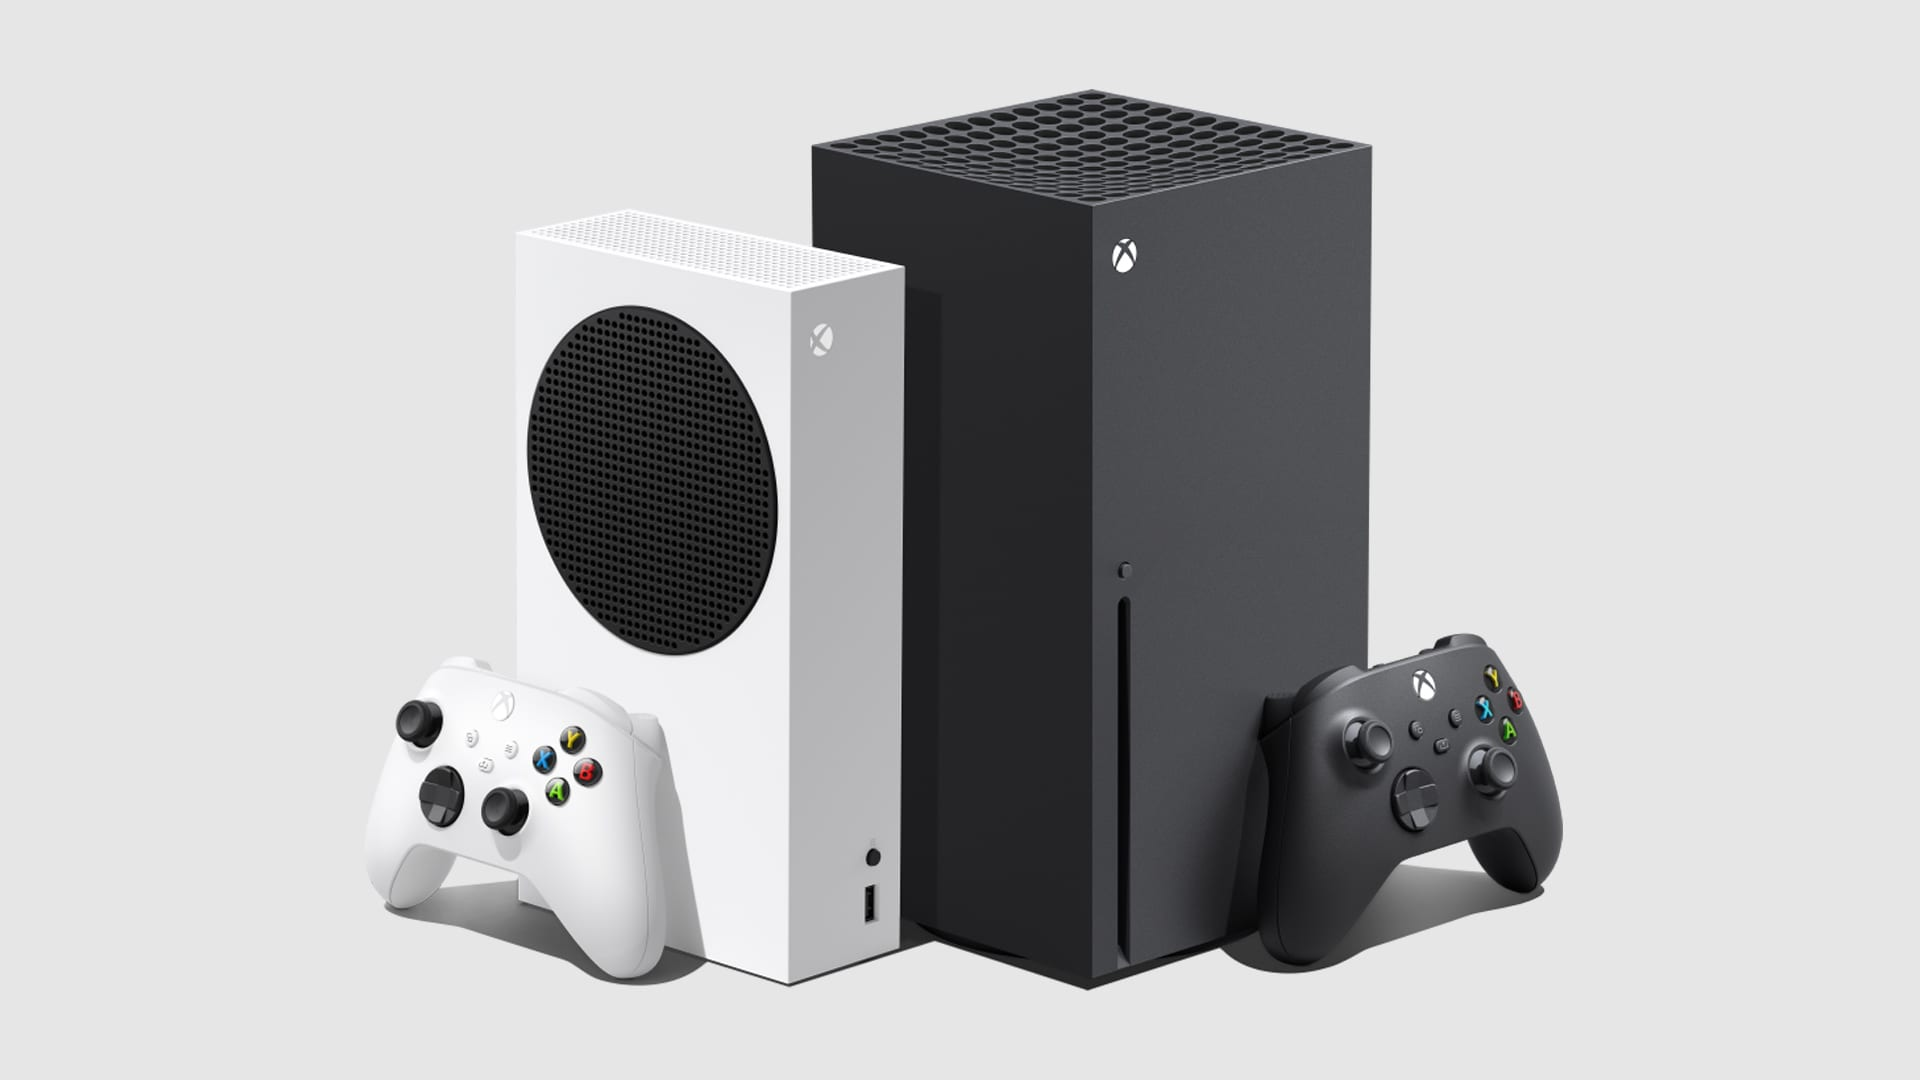 Xbox series x home console